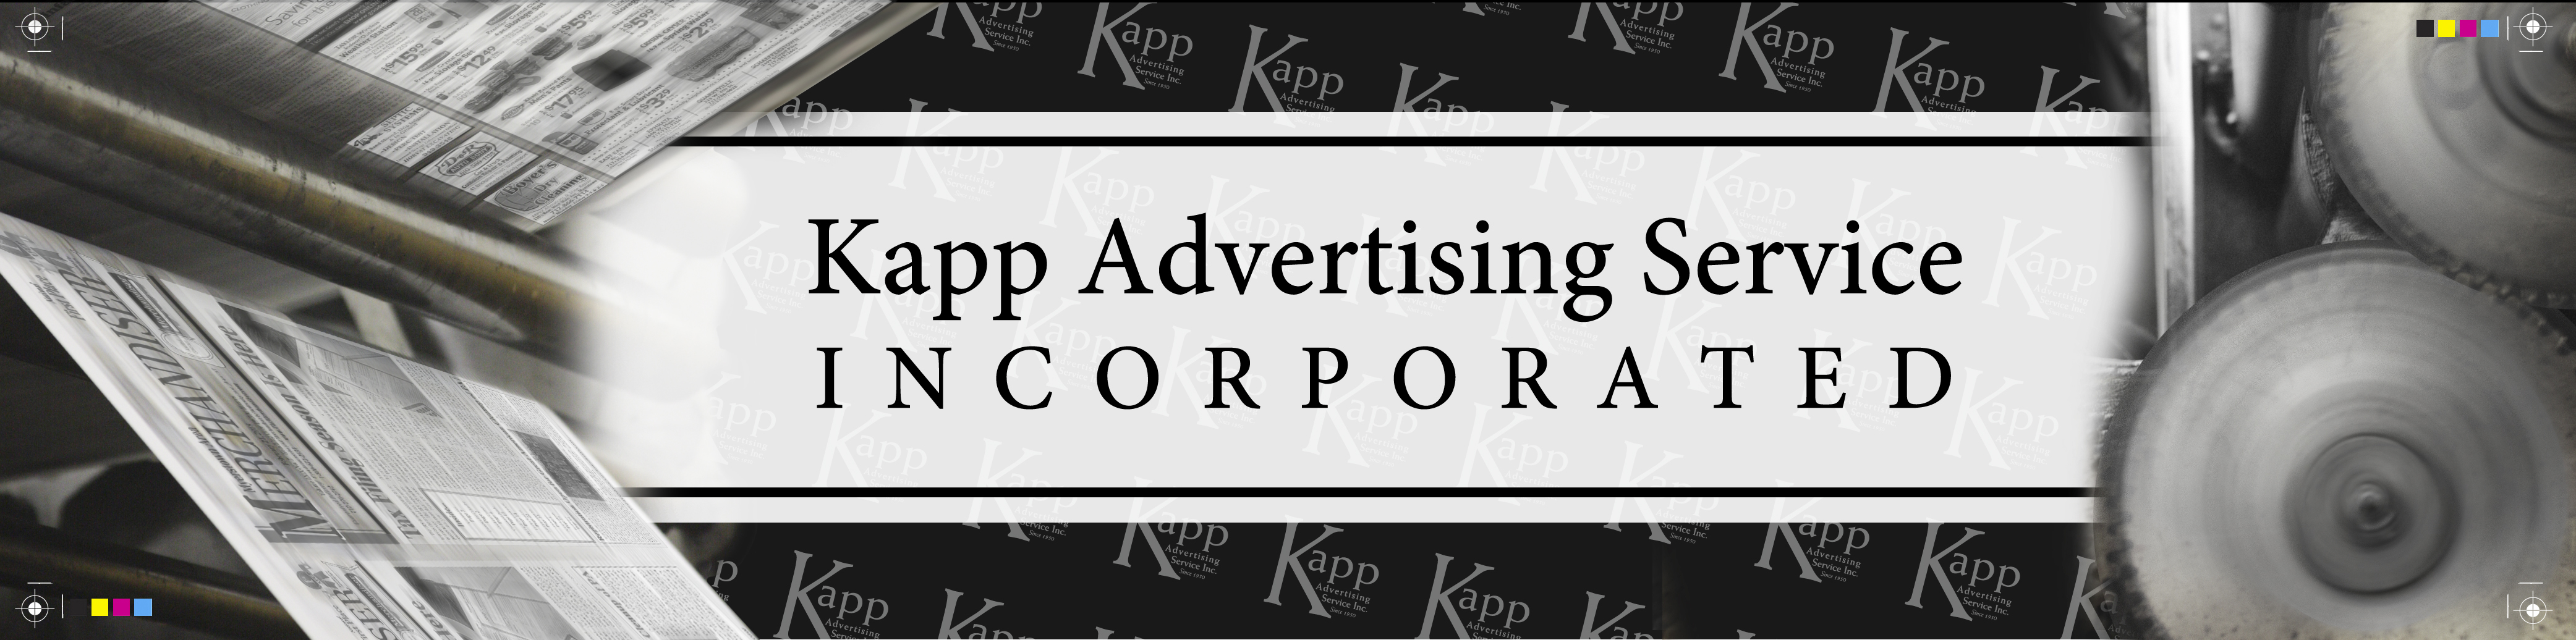 Kapp Advertising Incorporated